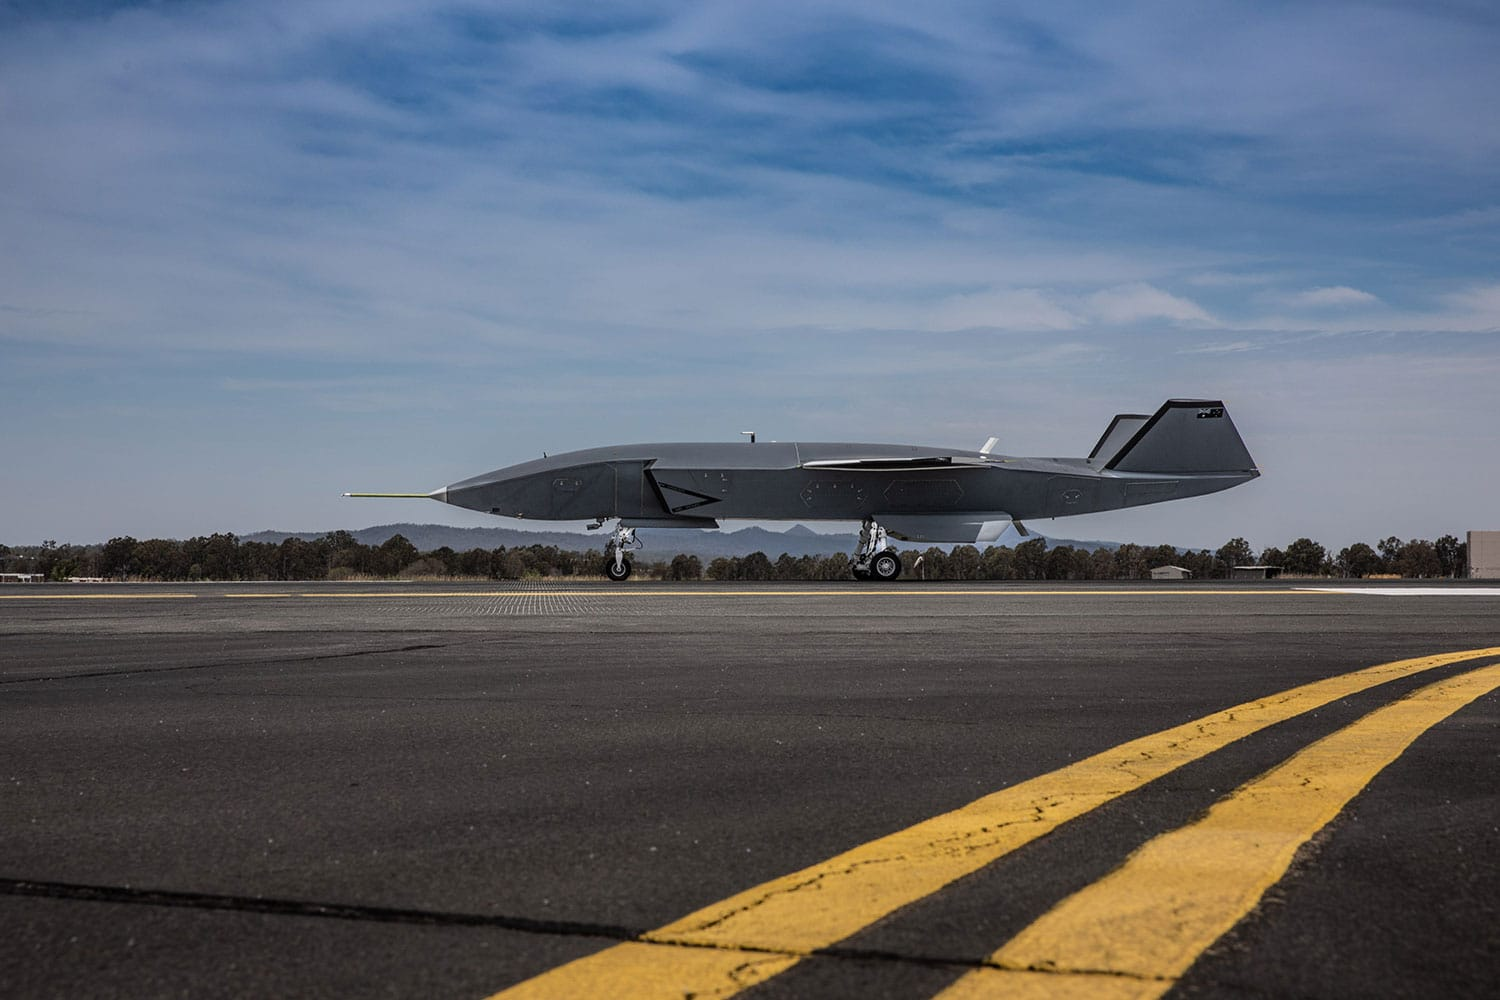 Boeing Loyal Wingman aircraft completes its first low-speed taxi test